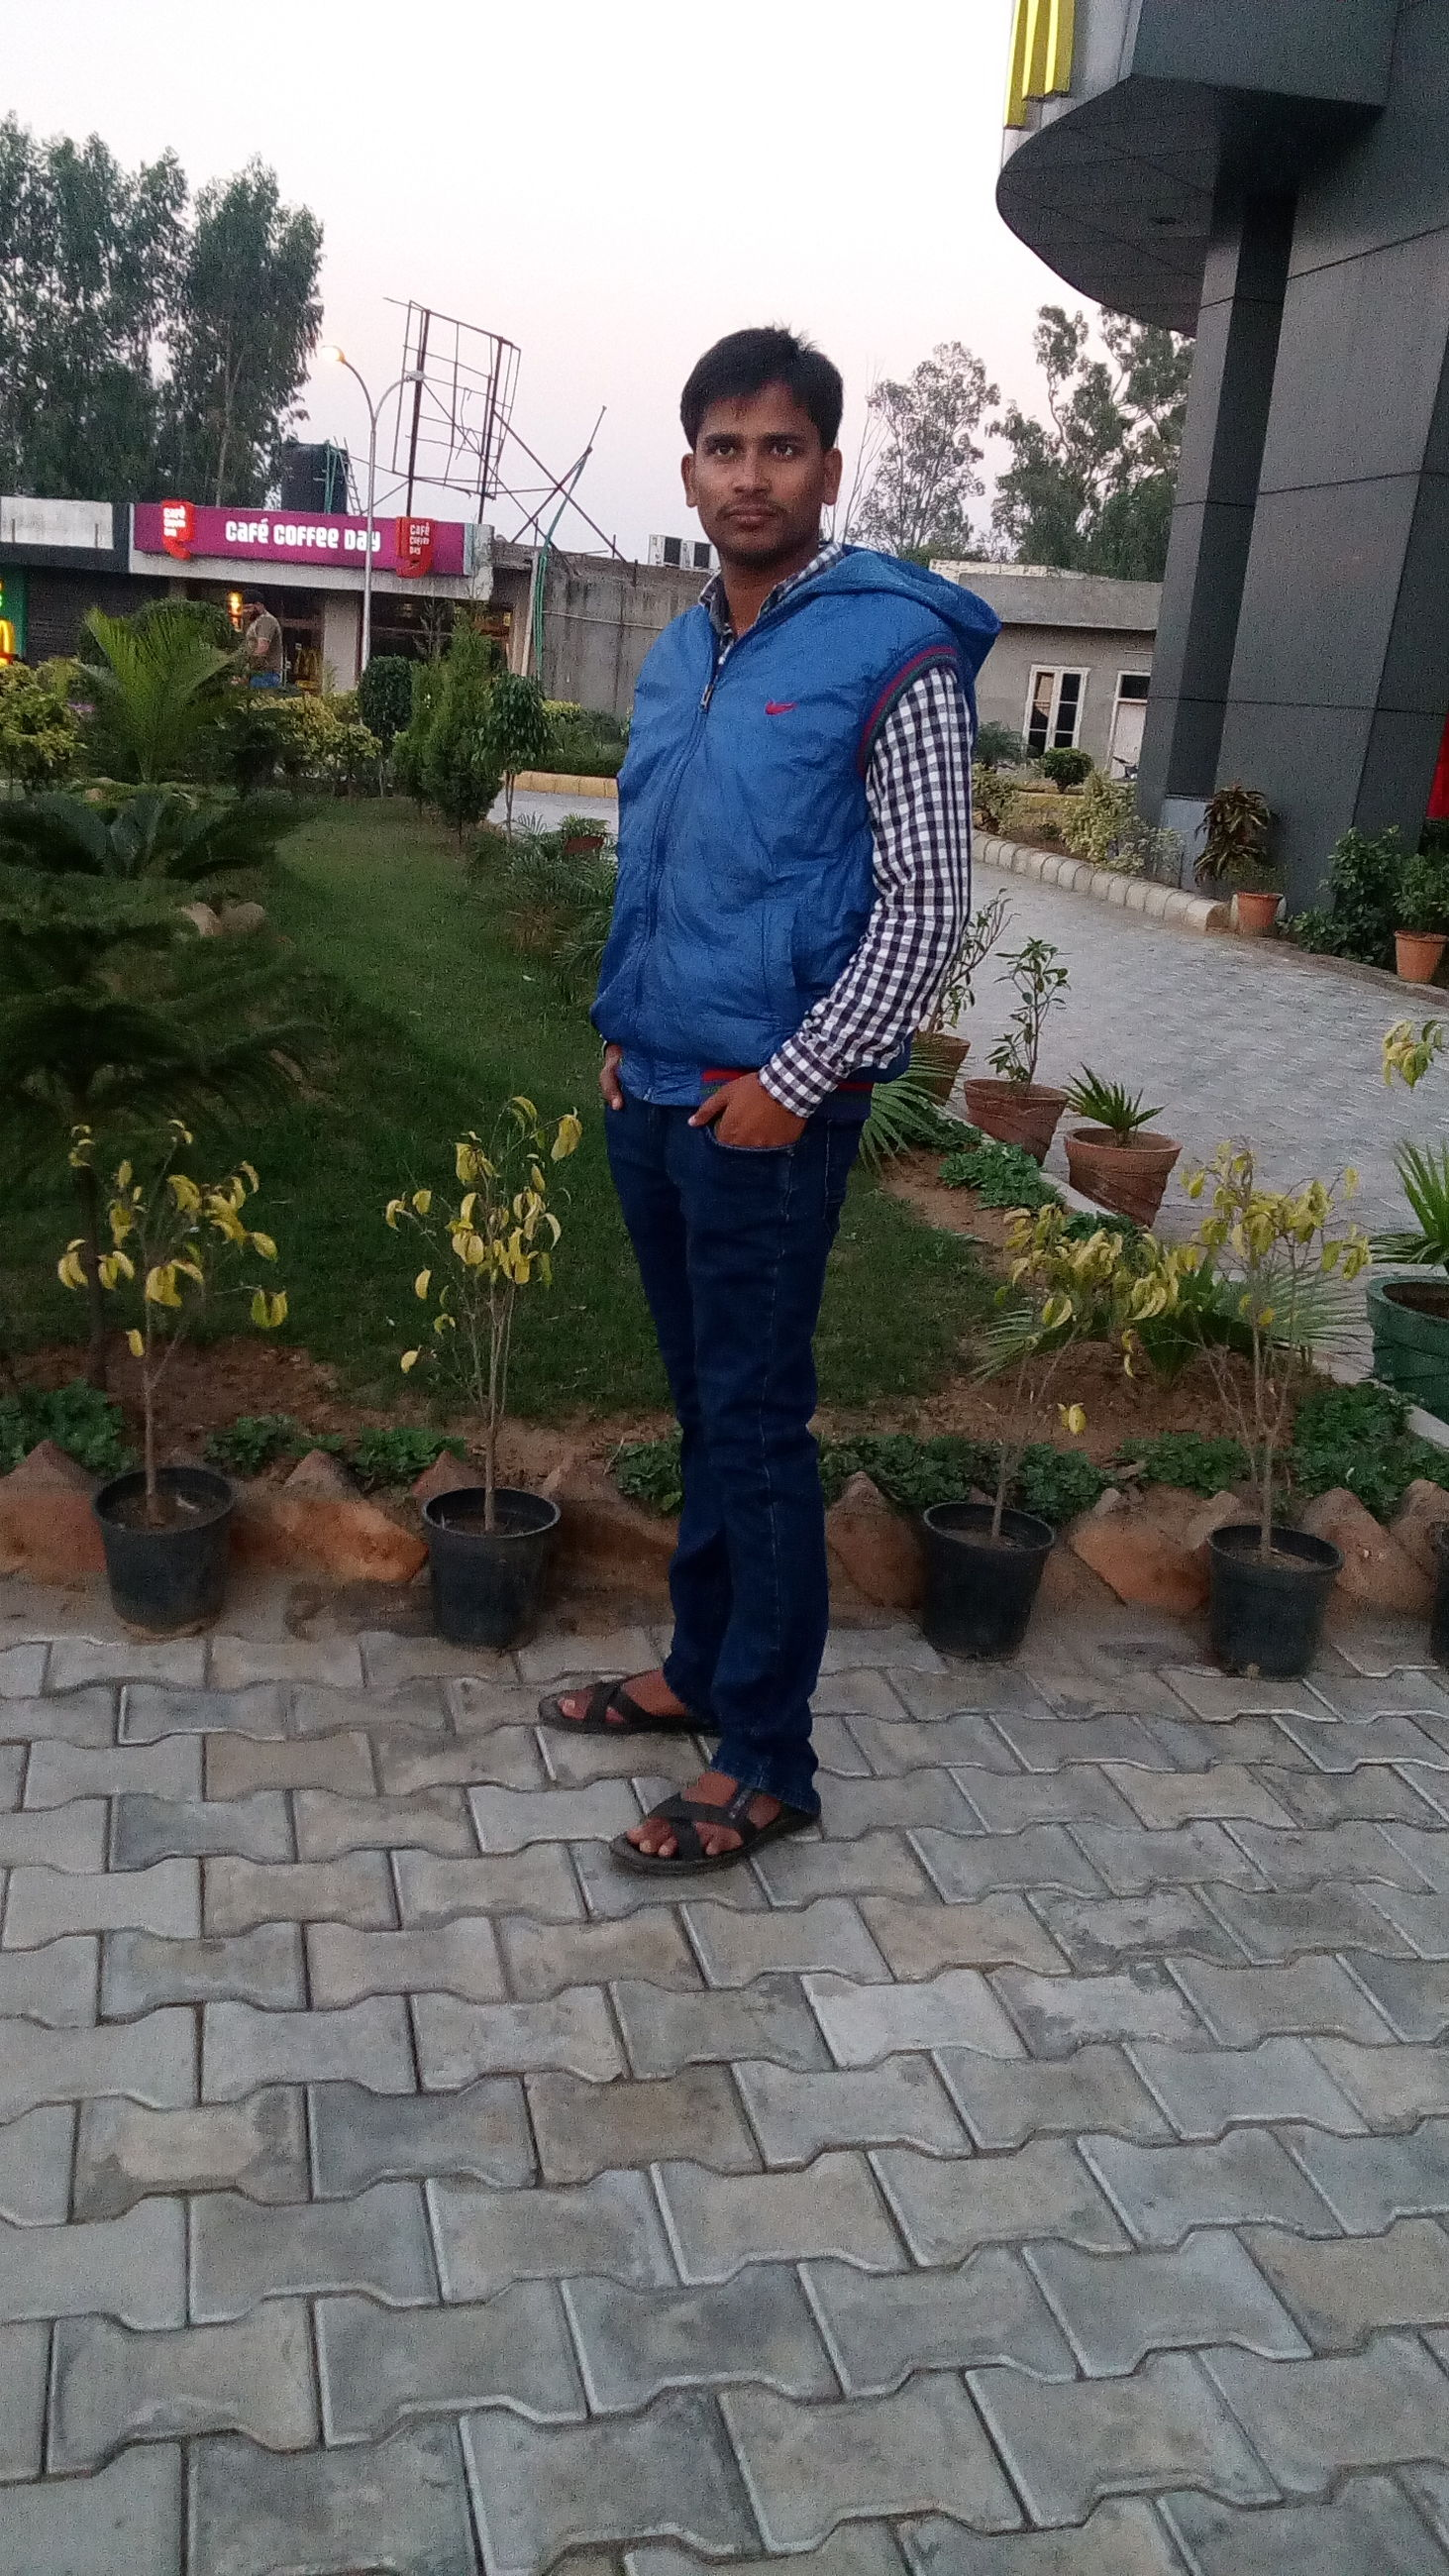 full length, casual clothing, lifestyles, leisure activity, person, standing, childhood, front view, elementary age, girls, built structure, boys, looking at camera, railing, young adult, steps, footpath, park - man made space